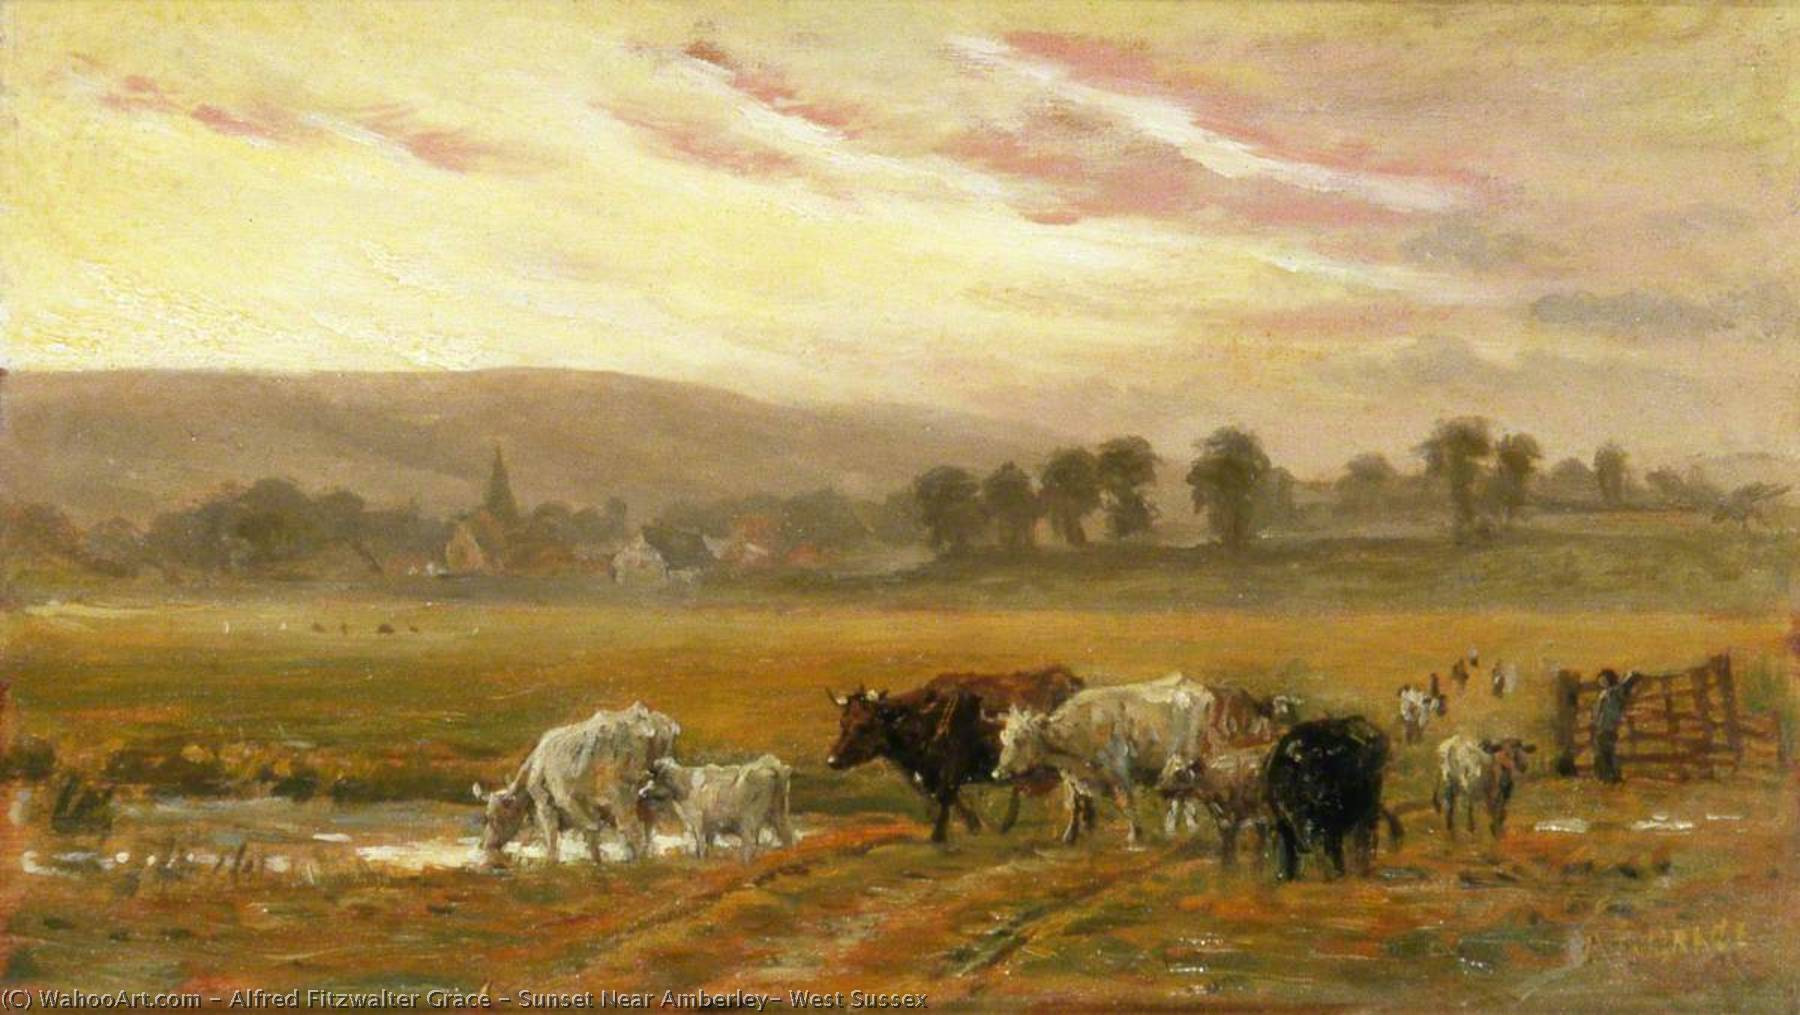 Sunset Near Amberley, West Sussex by Alfred Fitzwalter Grace | Museum Quality Reproductions | ArtsDot.com